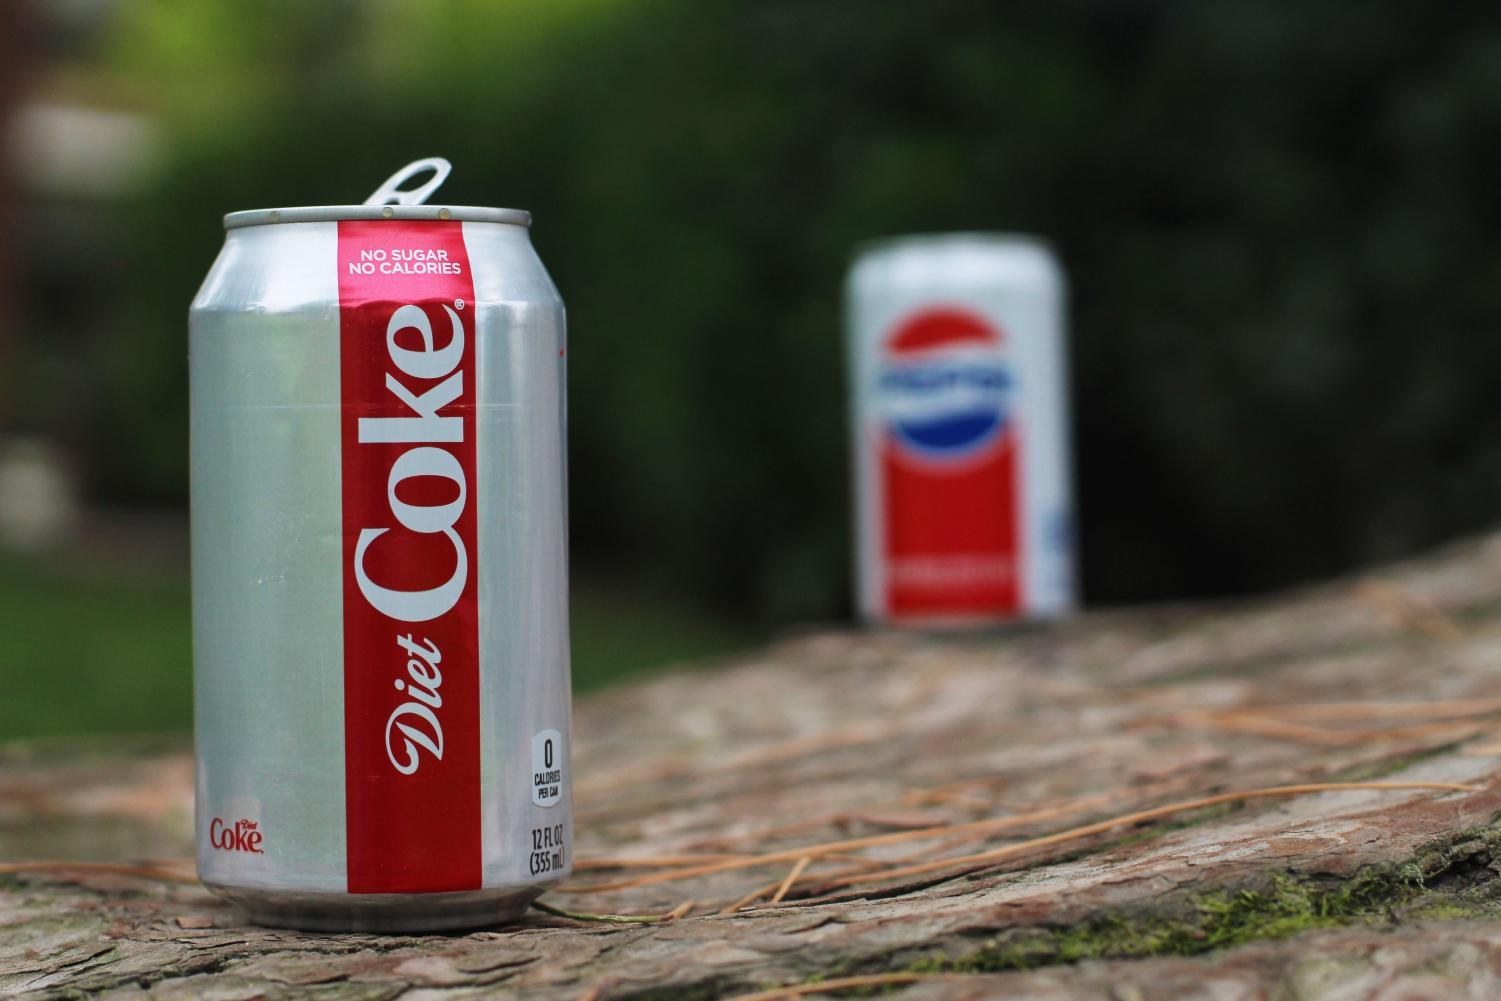 Opinion: Pepsi?s A Joke; Go With The Coke photo